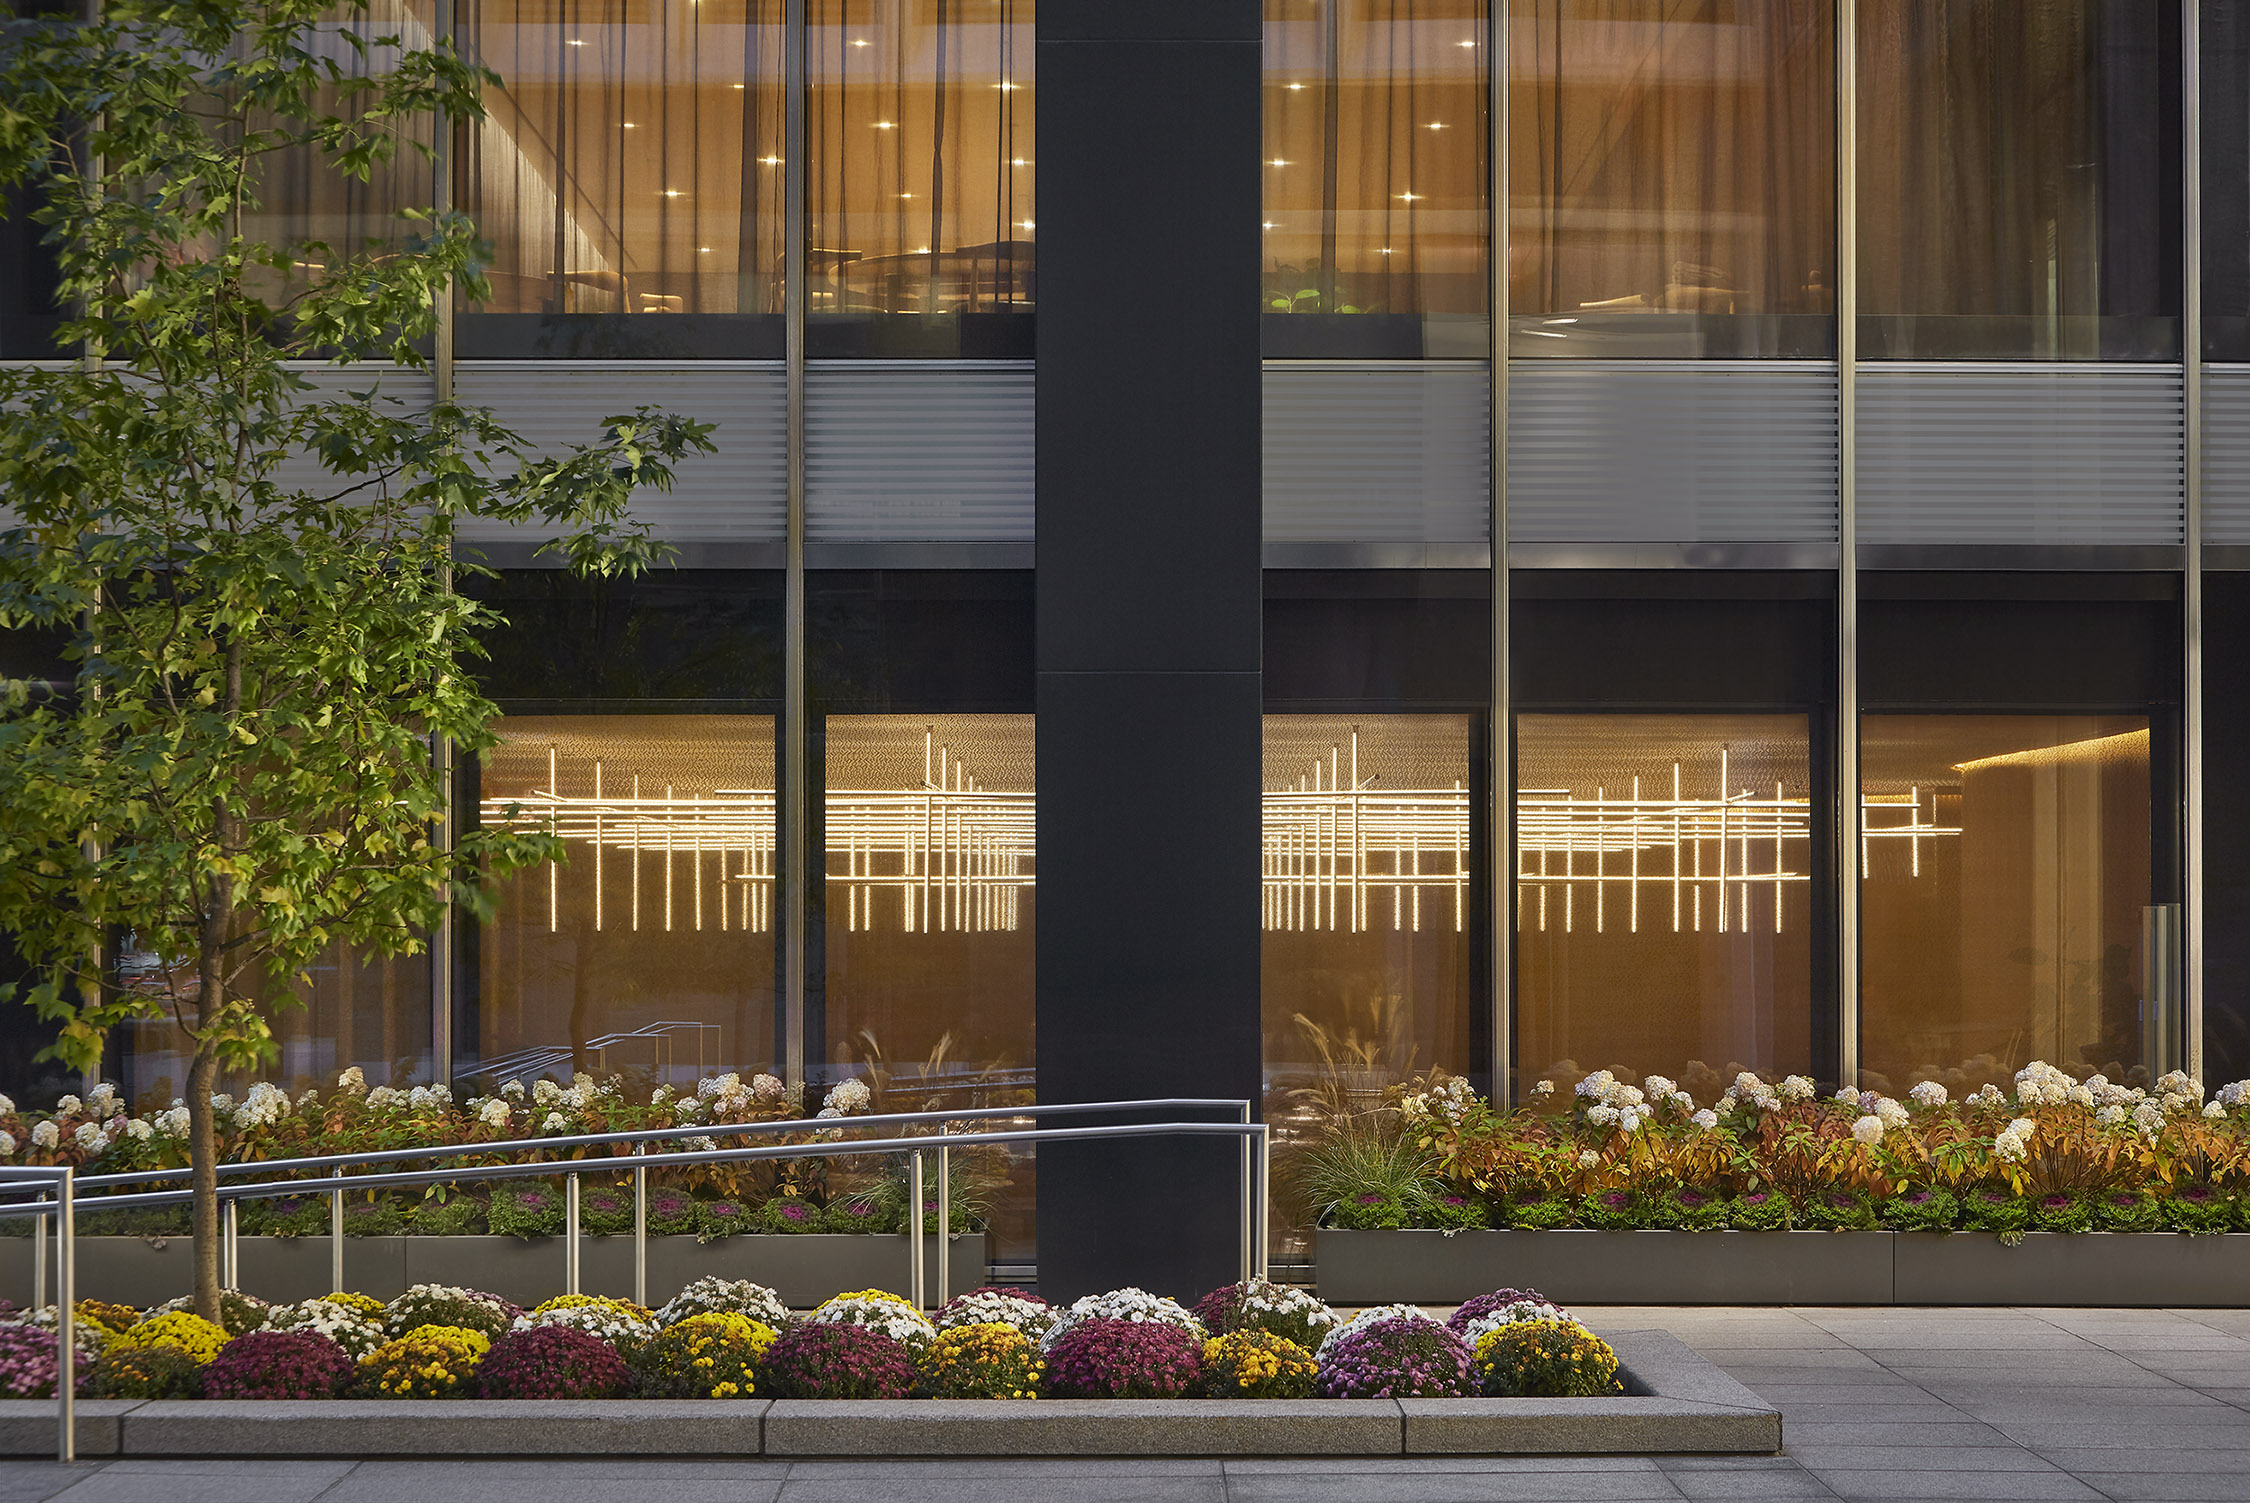 The Four Seasons Restaurant in New York City with lighting desig